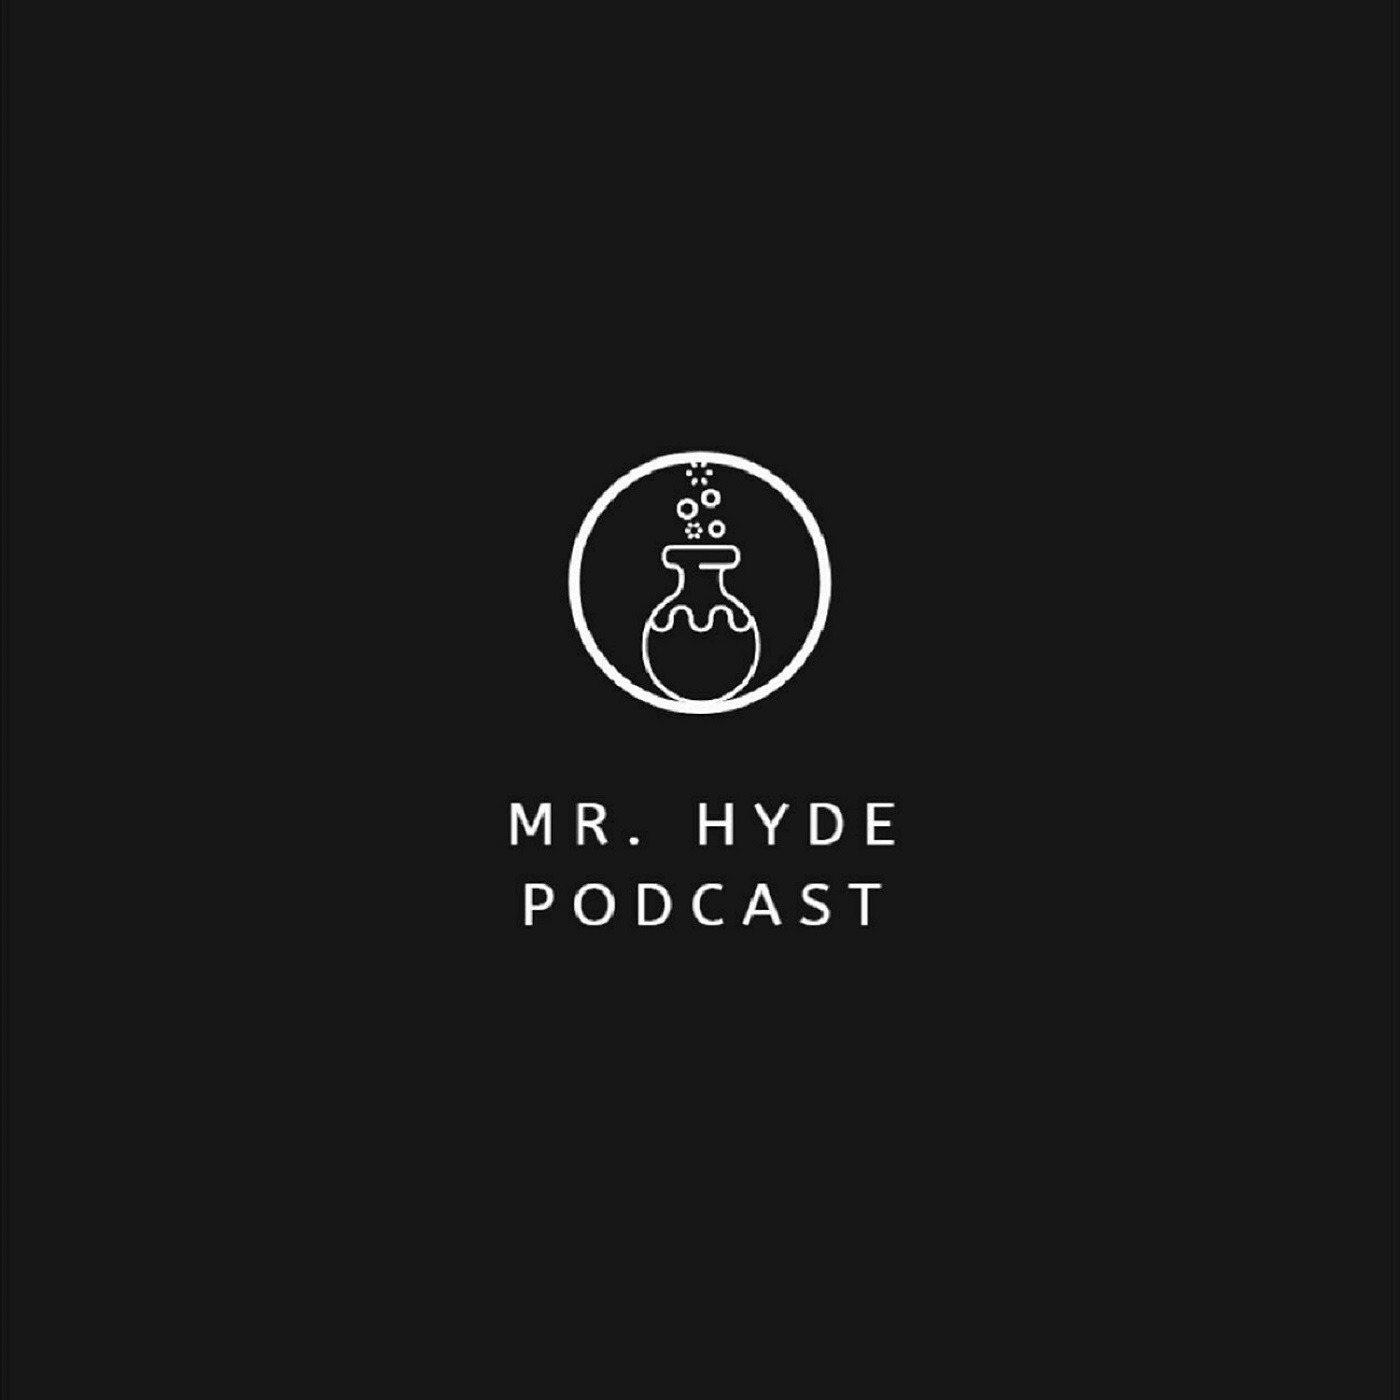 Mr. Hyde Podcast